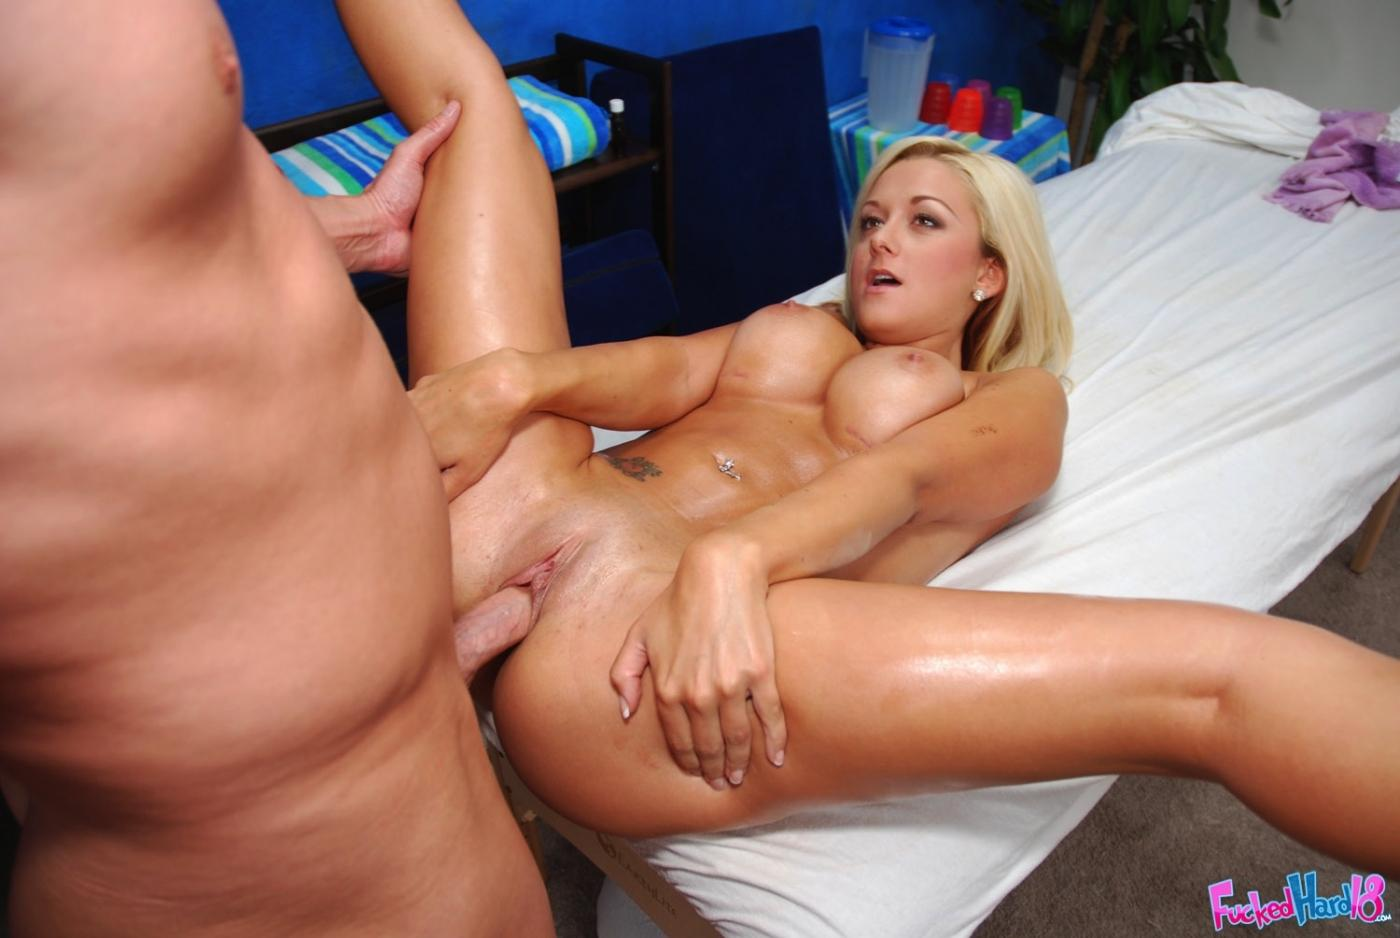 Women Being Fucked By Men photo 5